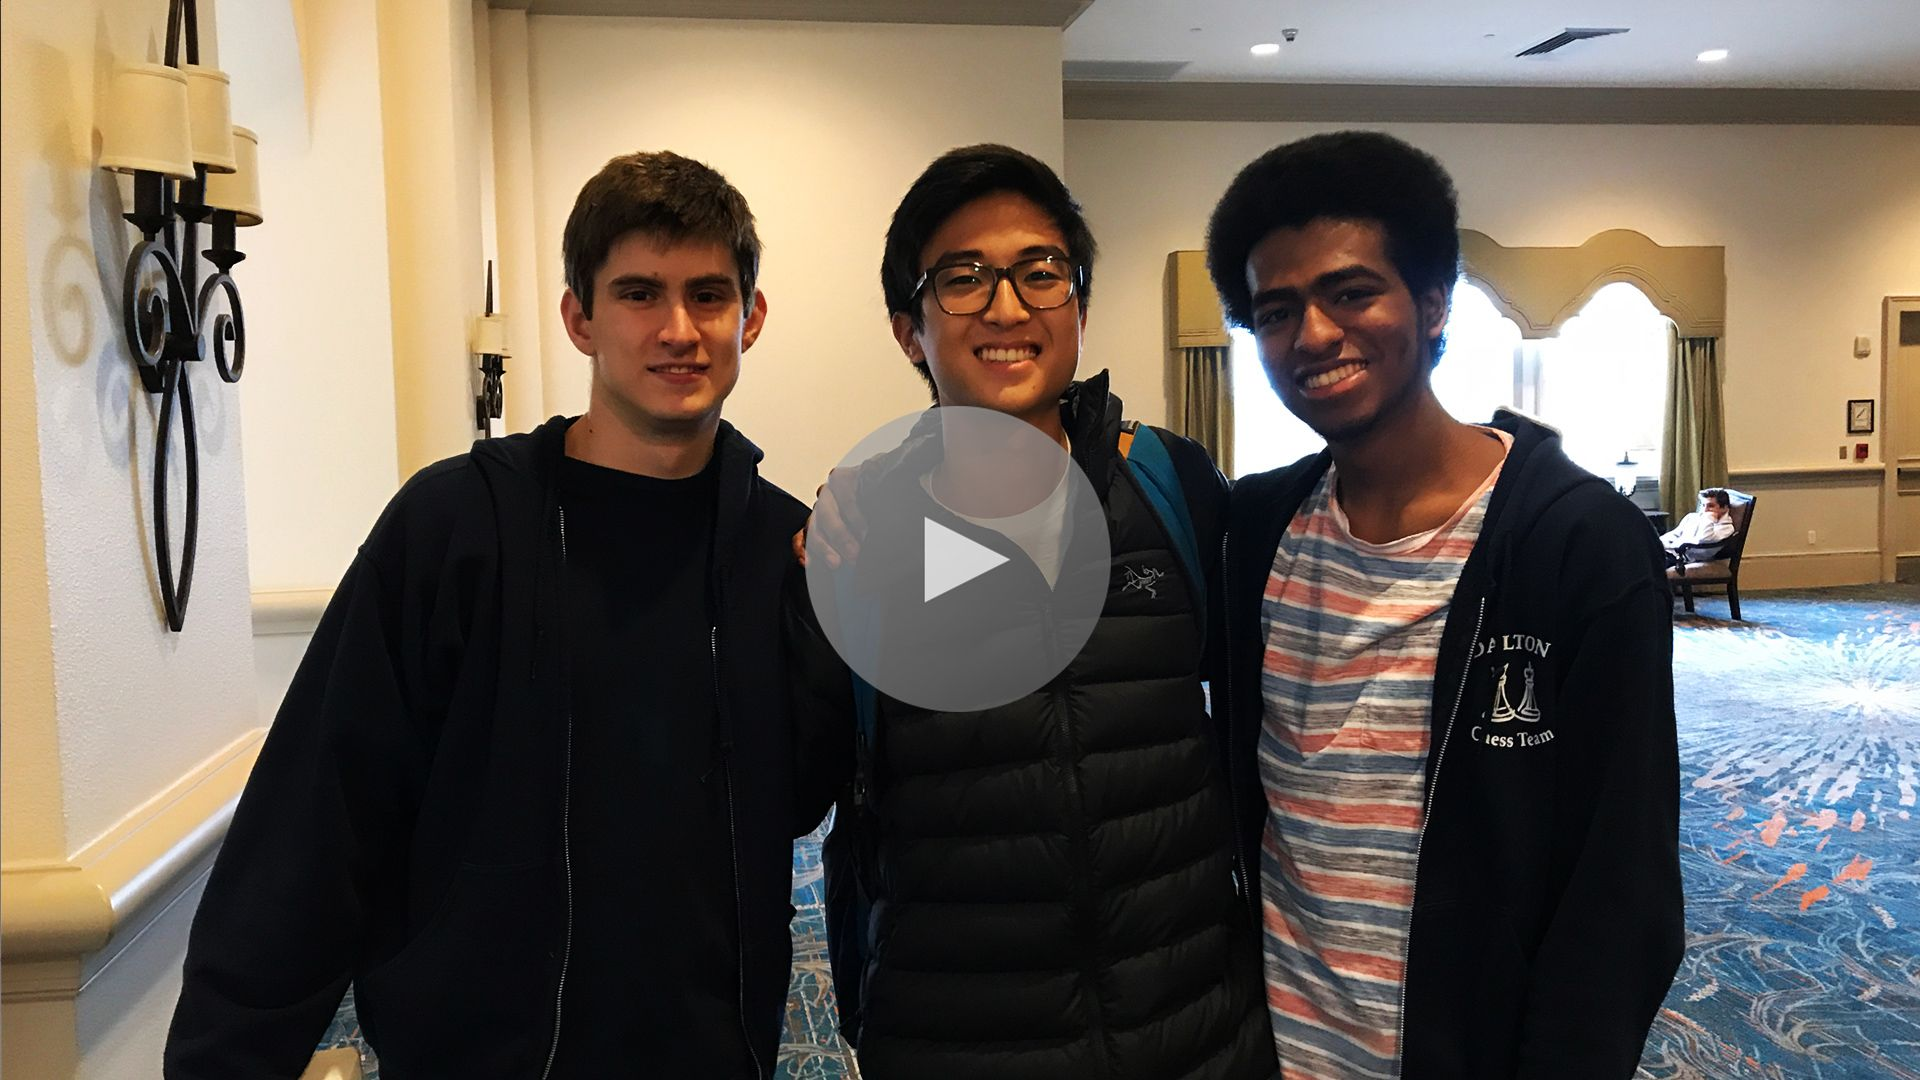 Seniors Danny Challenger, Reddy Lee, and Tristan Sollecito give a heartwarming and inspiring toast about what their ongoing commitment to Dalton chess has meant to them throughout their many Dalton days. This was their 18th trip to the Nationals.